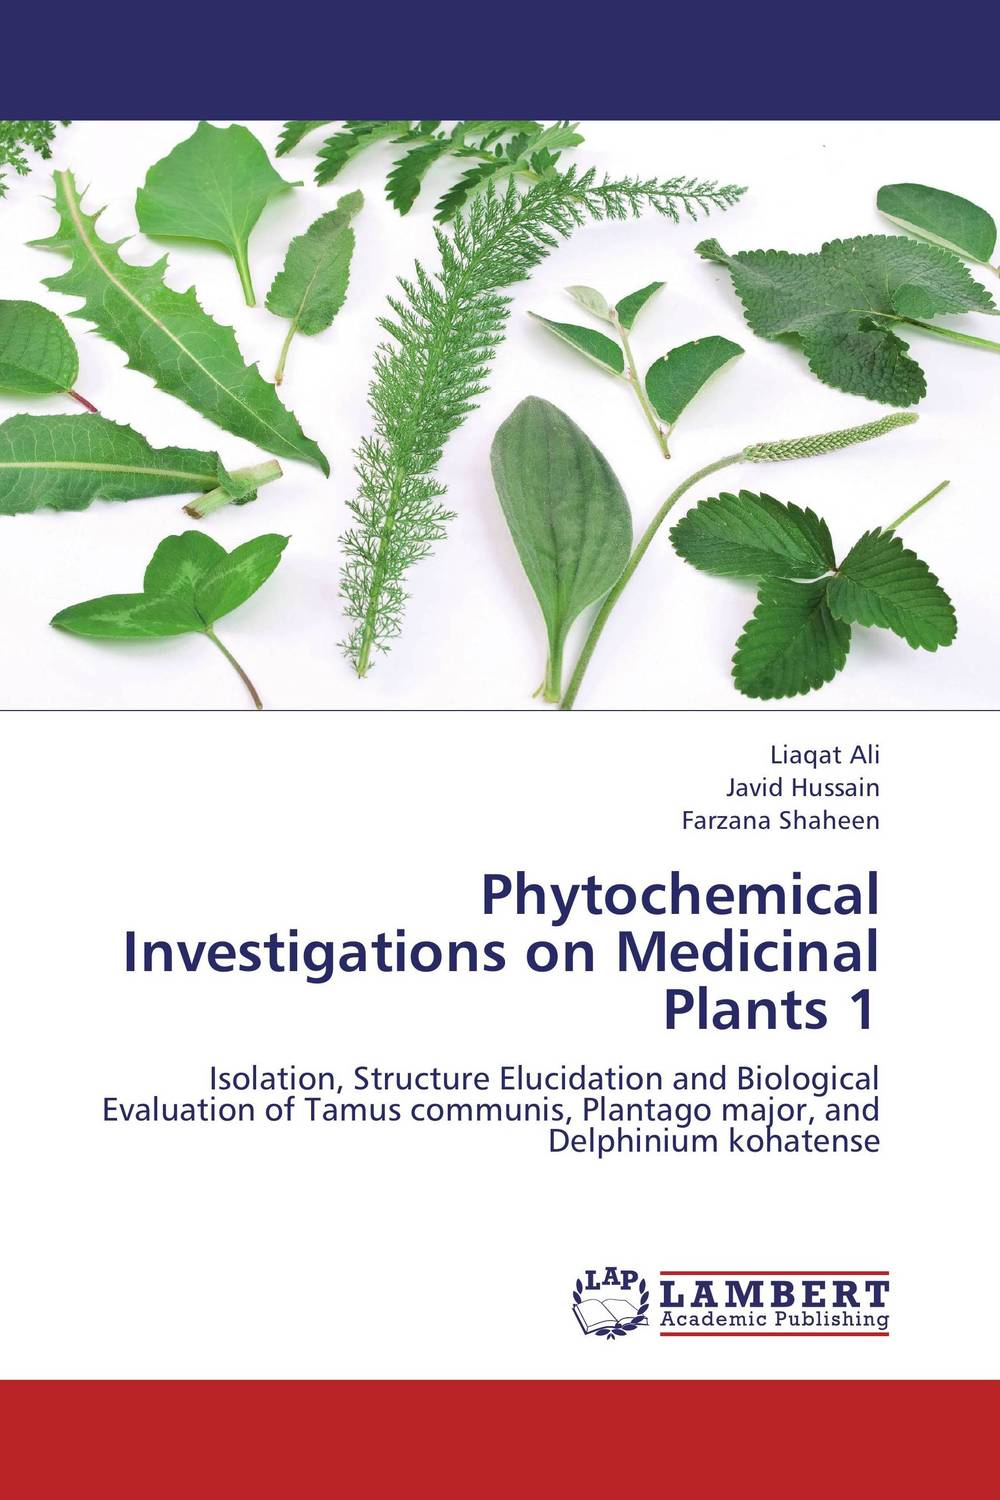 Phytochemical Investigations on Medicinal Plants 1 md rabiul islam s m ibrahim sumon and farhana lipi phytochemical evaluation of leaves of cymbopogan citratus